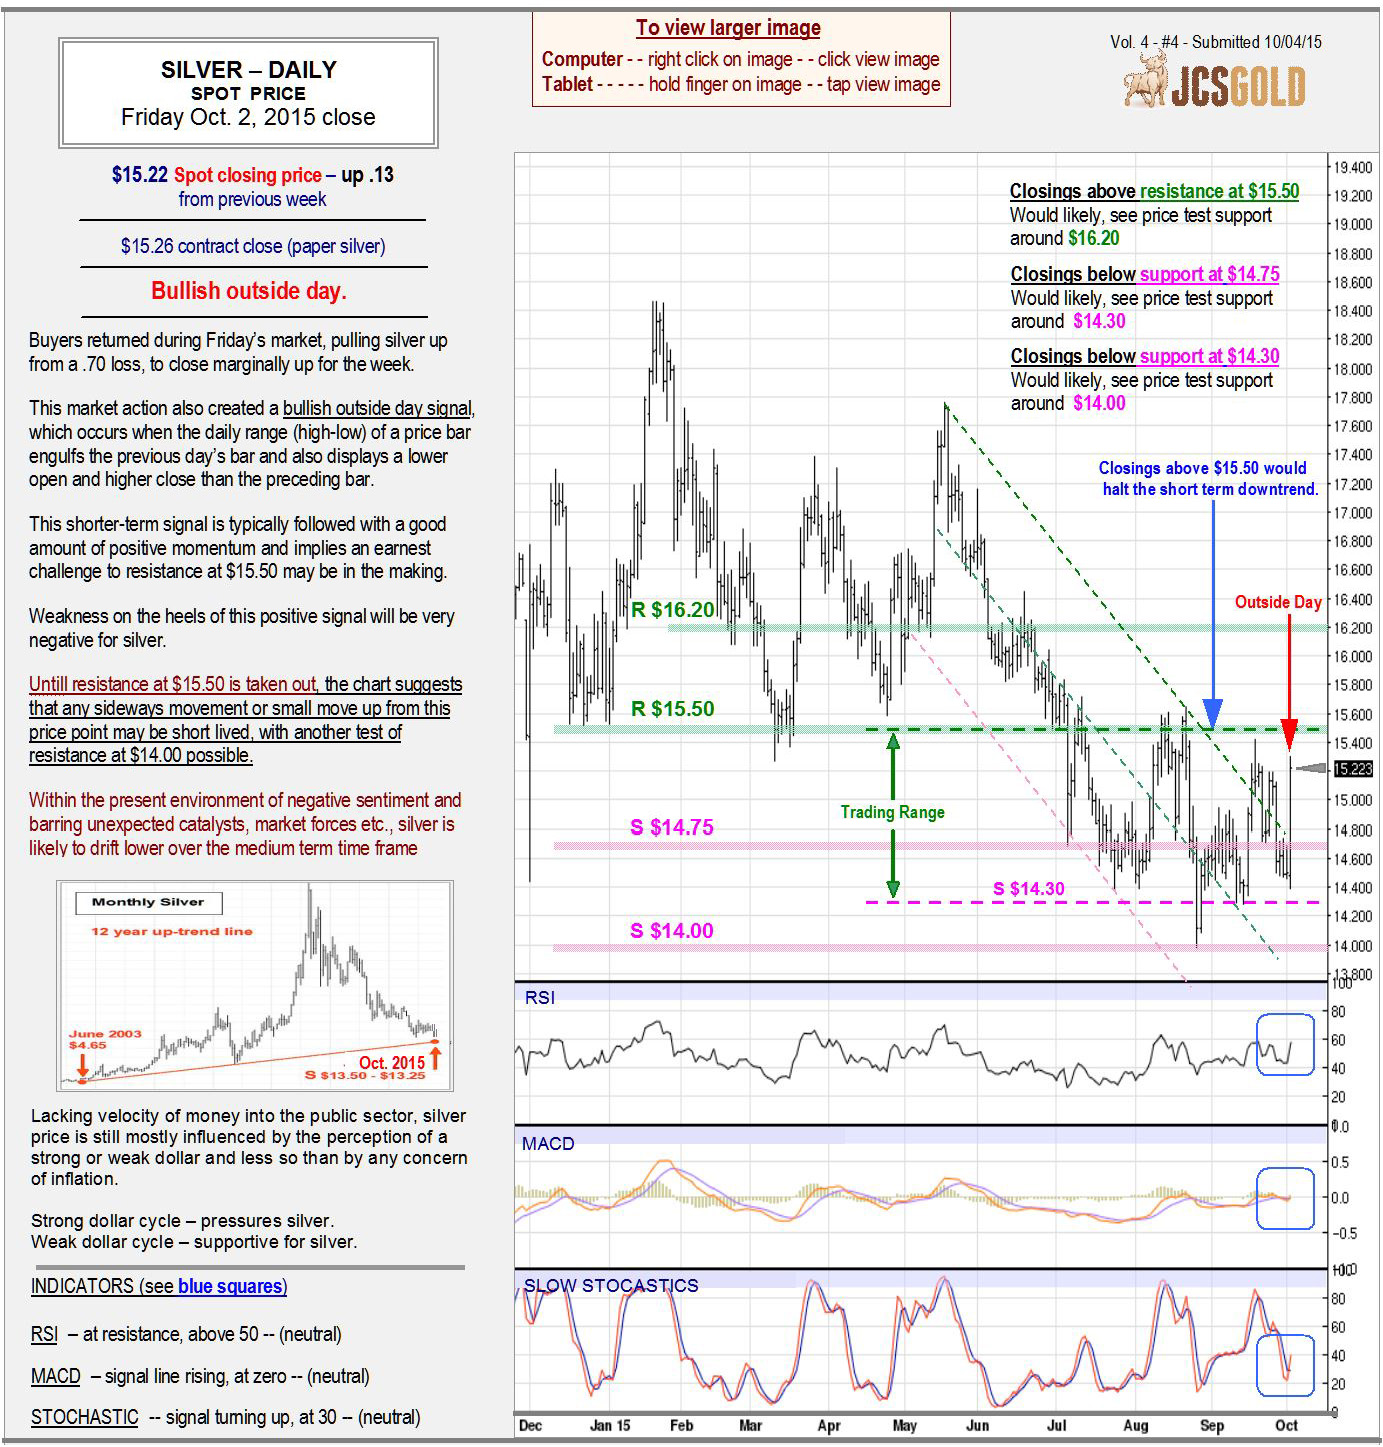 Oct 2, 2015 chart & commentary